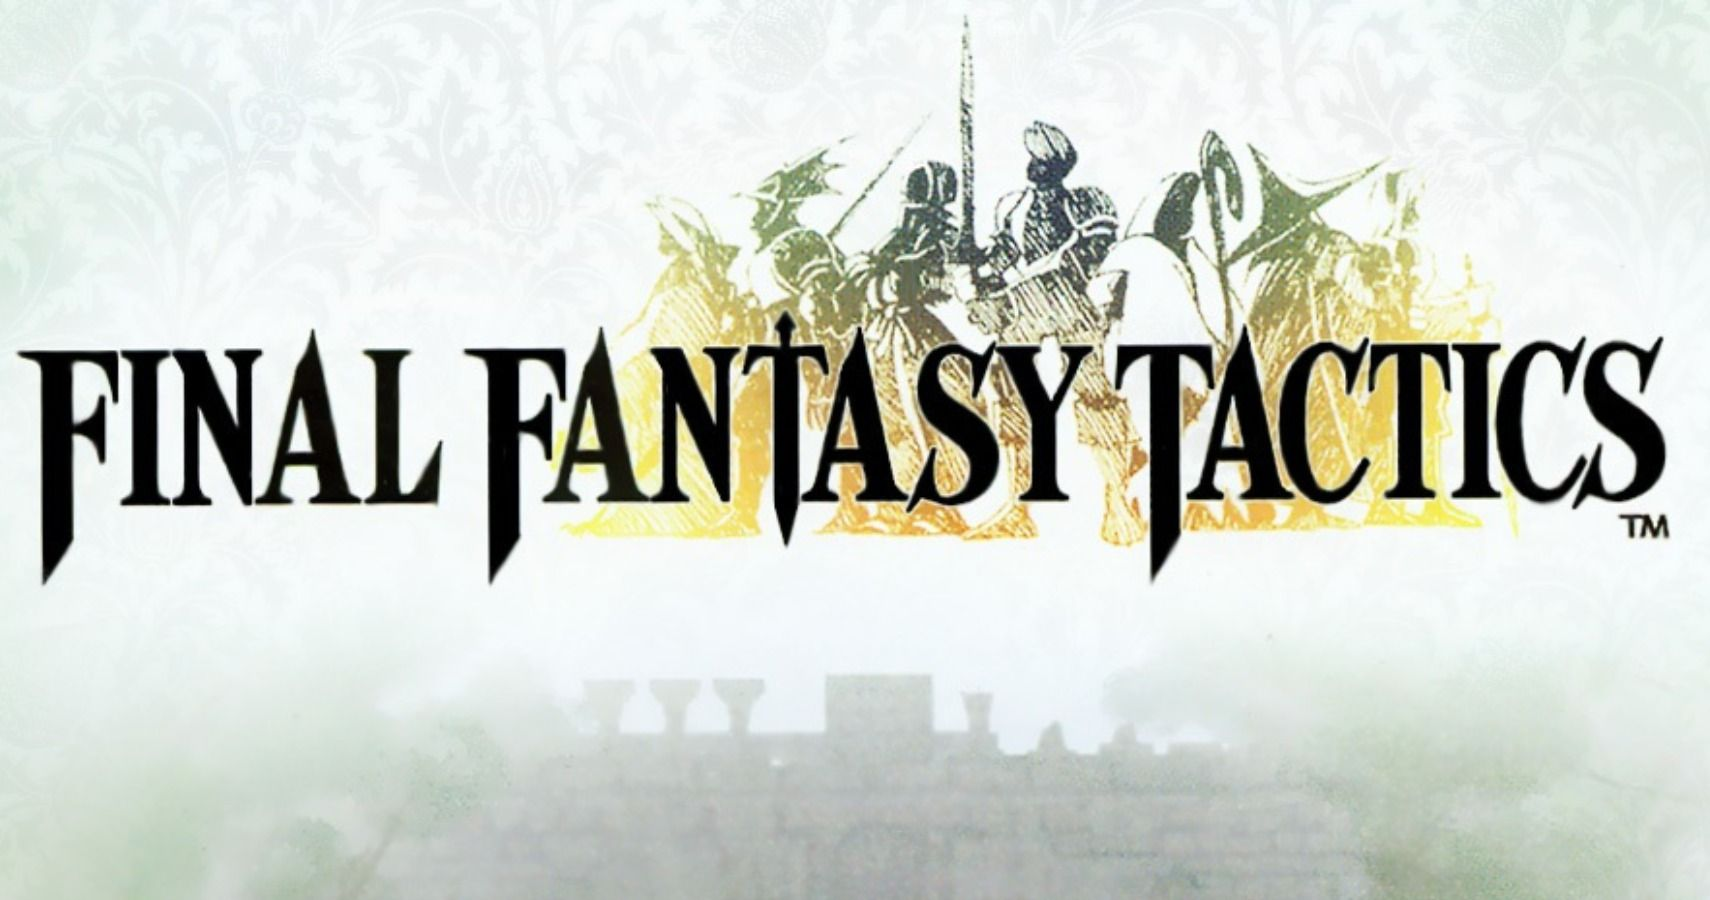 Final Fantasy Tactics: The Next Square Enix Remaster?.